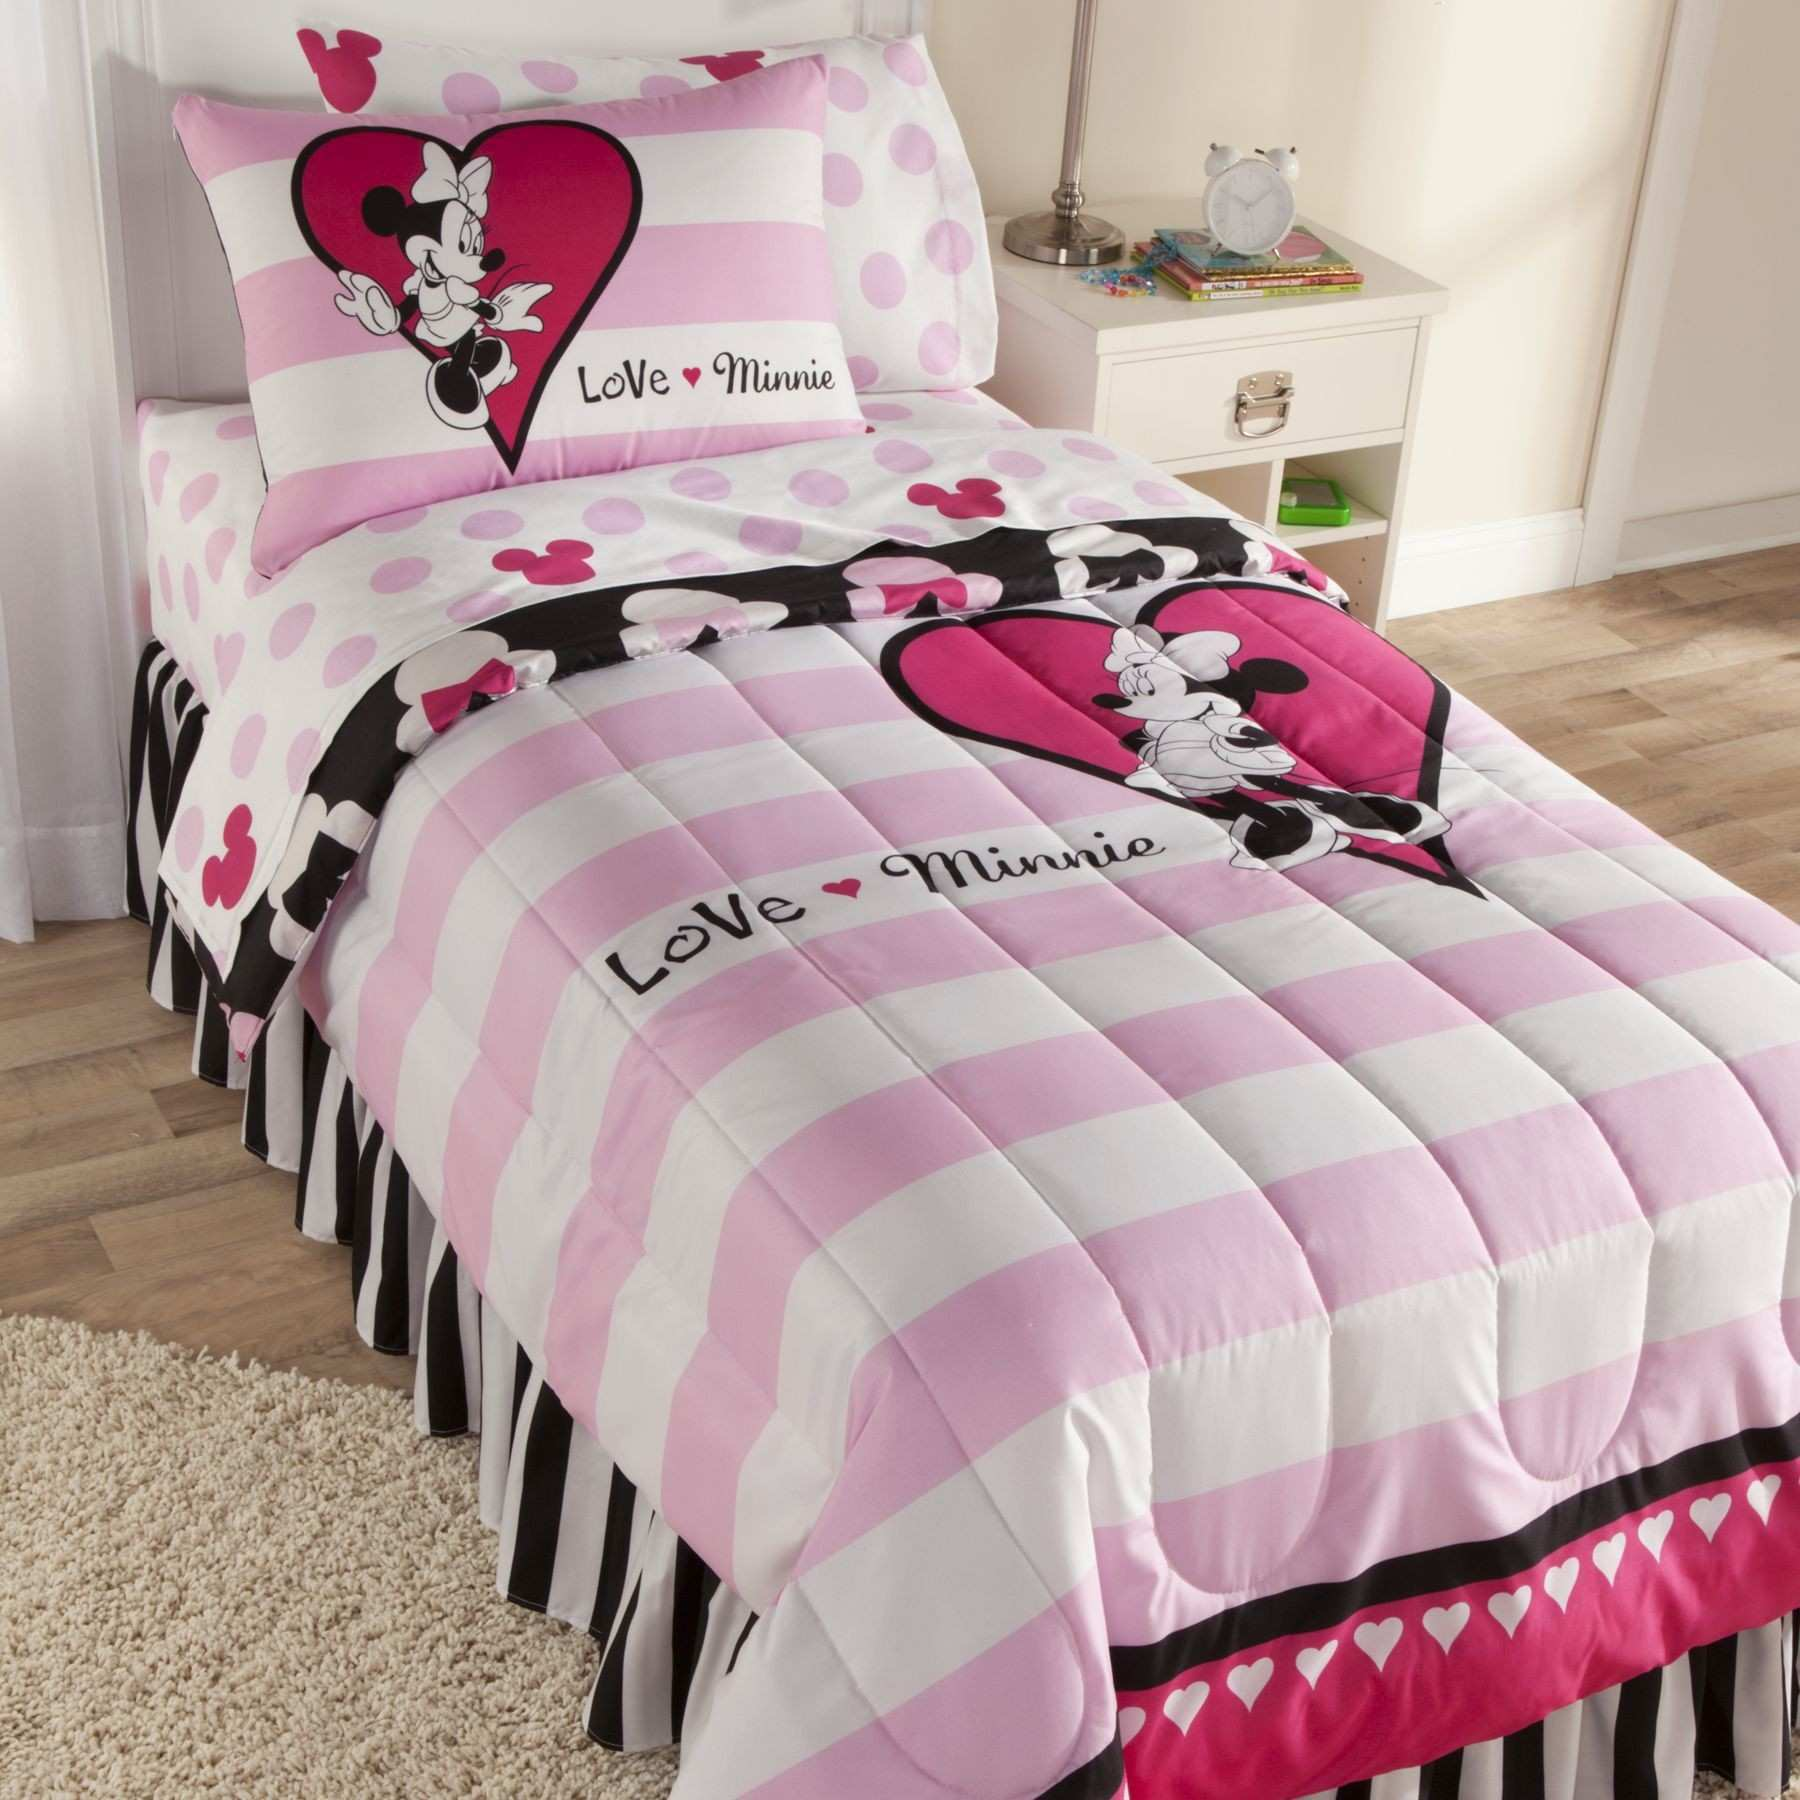 Decor Minnie Mouse Bedroom Decor Beds With Underneath Carpets And